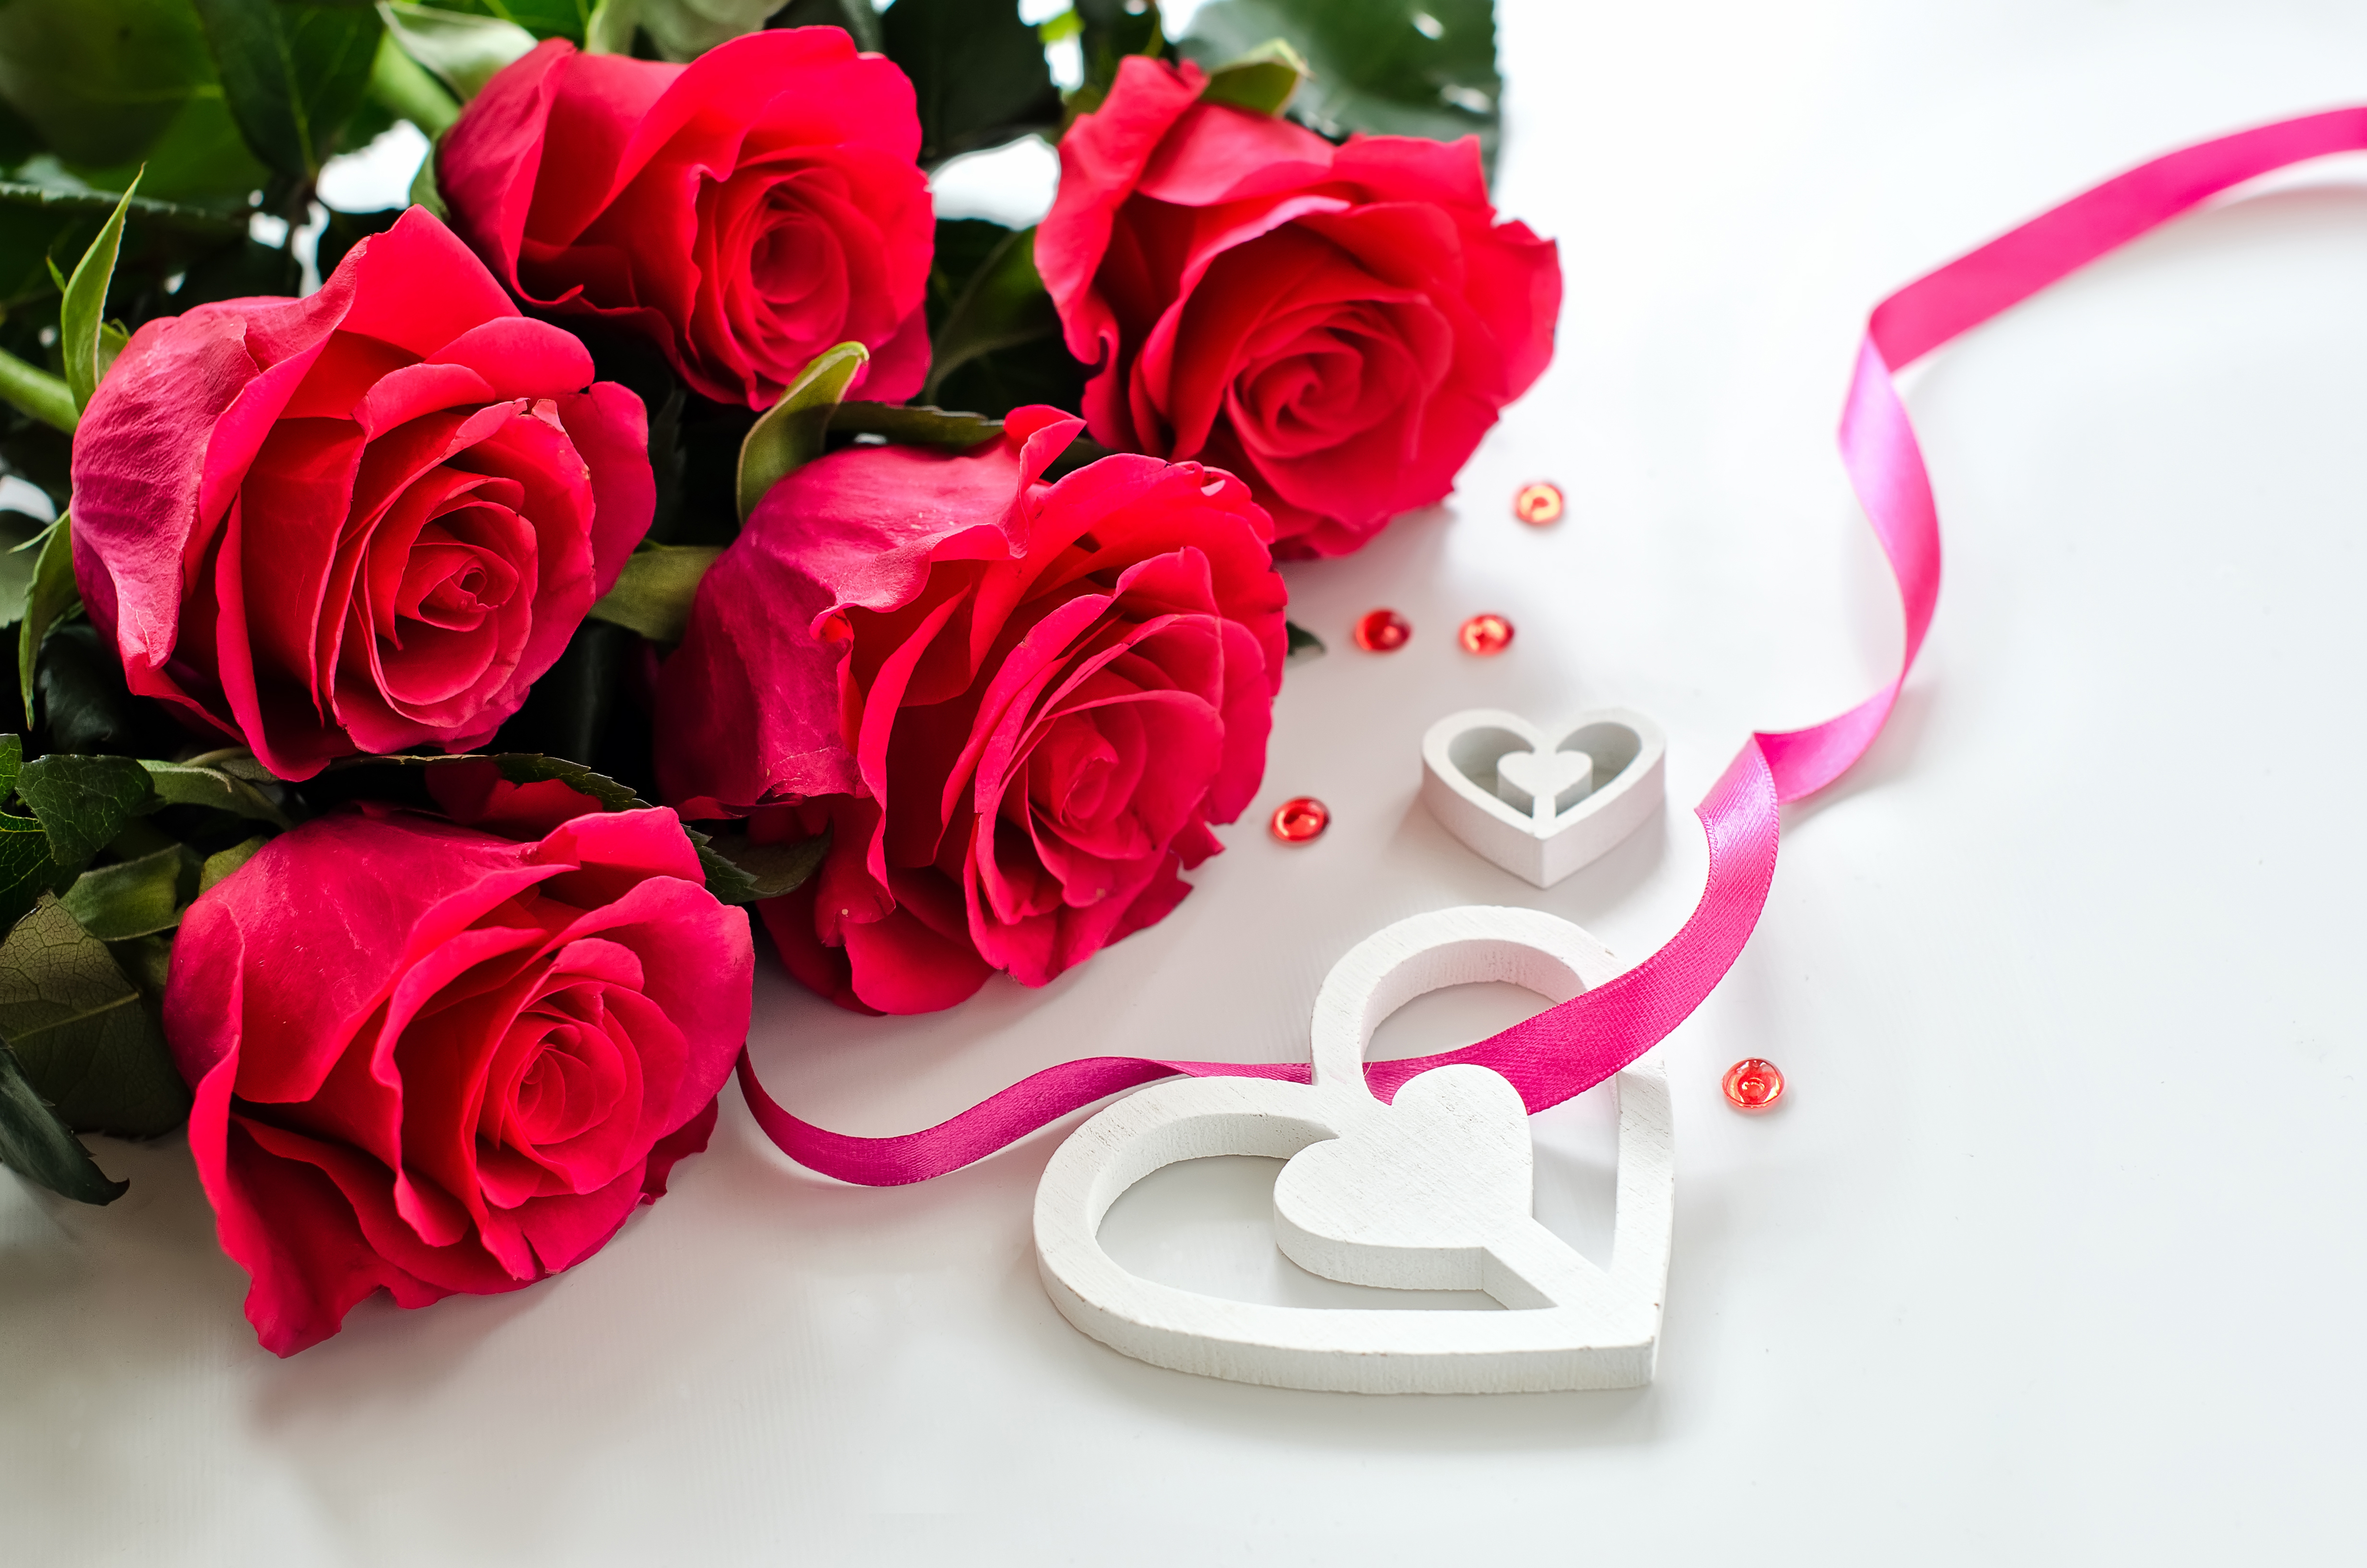 Desktop Wallpapers Valentine S Day Heart Red Rose Flowers